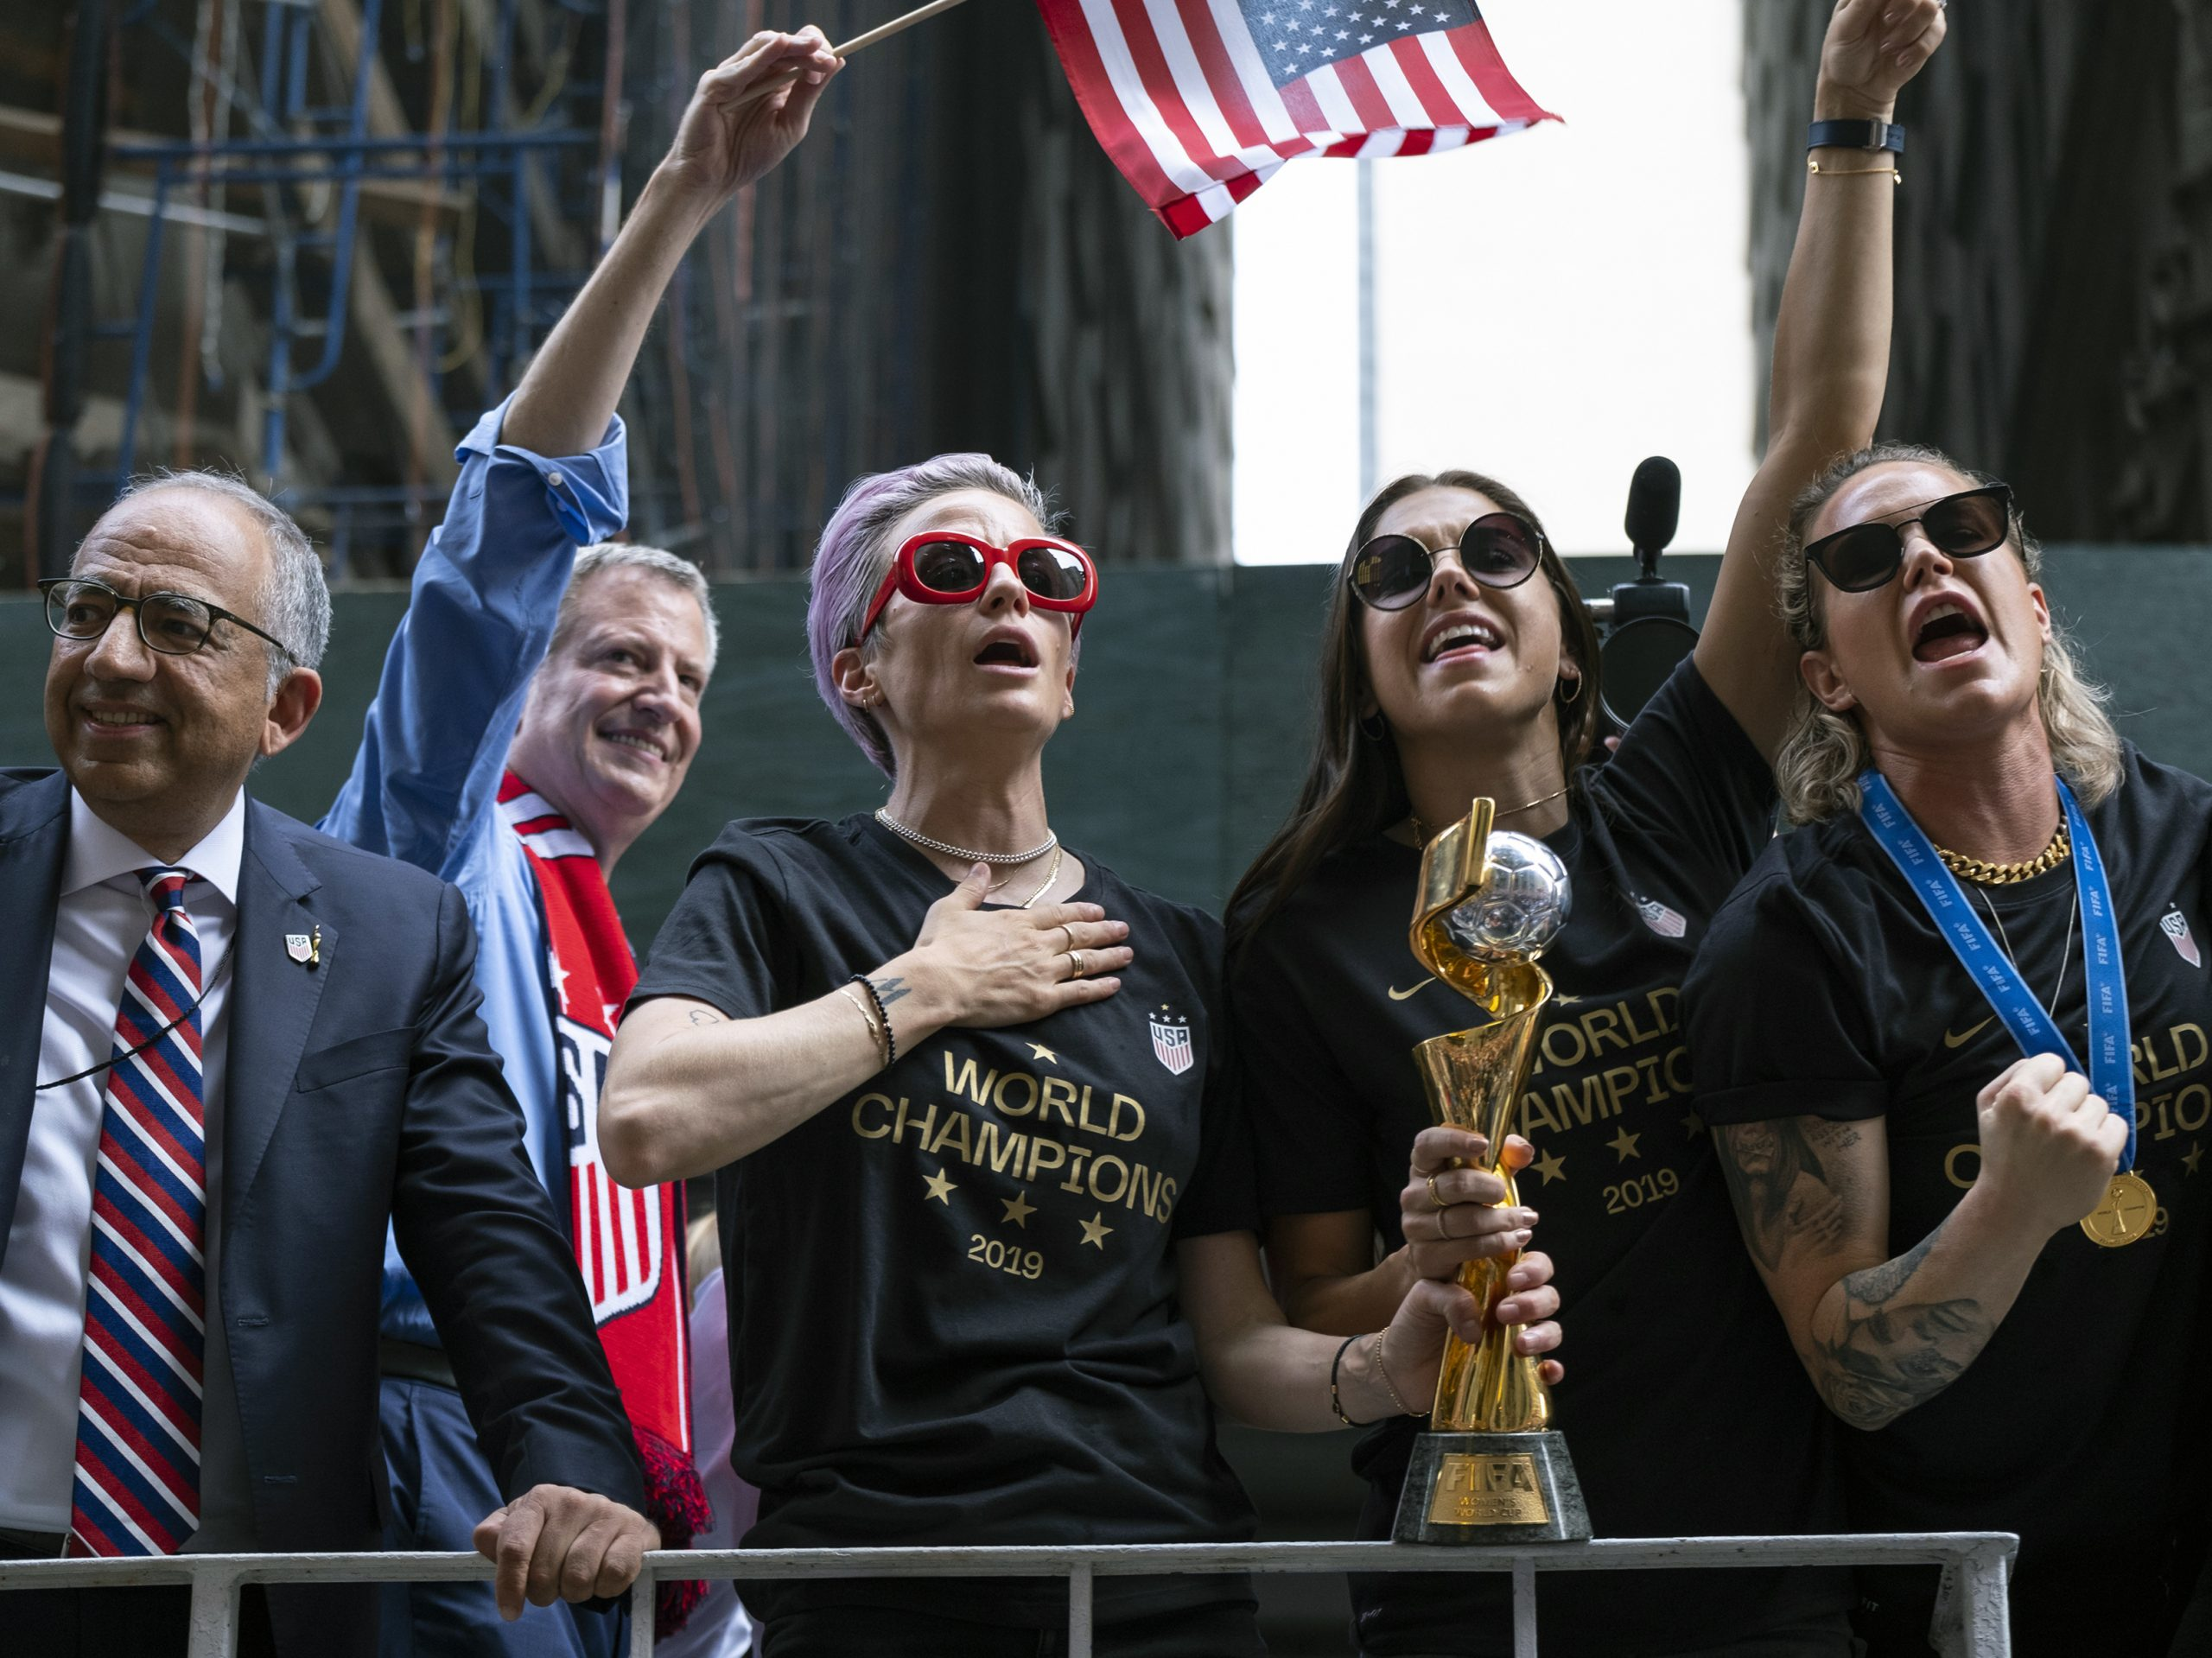 From left, U.S. Soccer Federation President Carlos Cordeiro, New York Mayor Bill de Blasio and soccer players Megan Rapinoe, Alex Morgan and Ashlyn Harris celebrate the U.S. women's soccer team's world championship in New York, during a ticker tape parade along the Canyon of Heroes Wednesday.